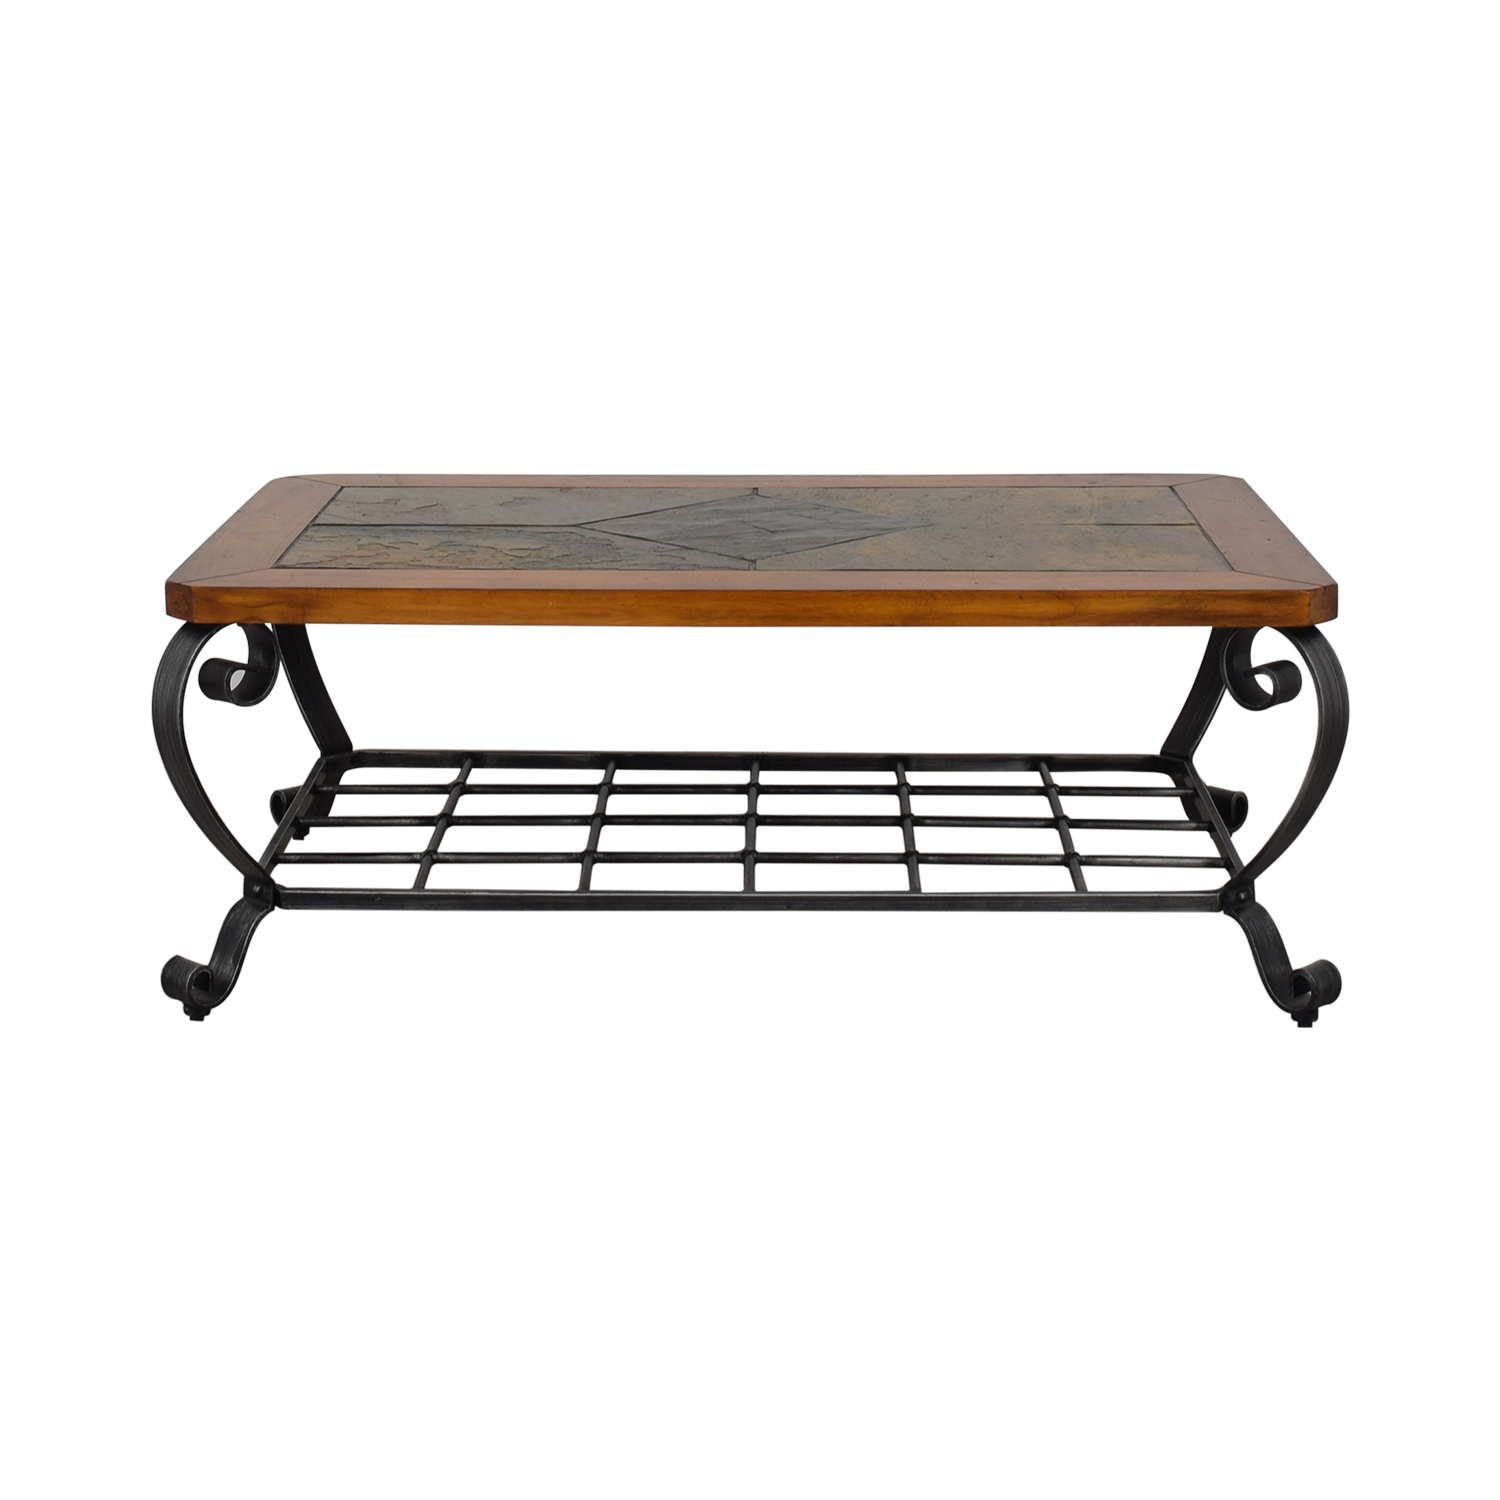 Raymour & Flanigan Raymour & Flanigan Tile Top Coffee Table on sale